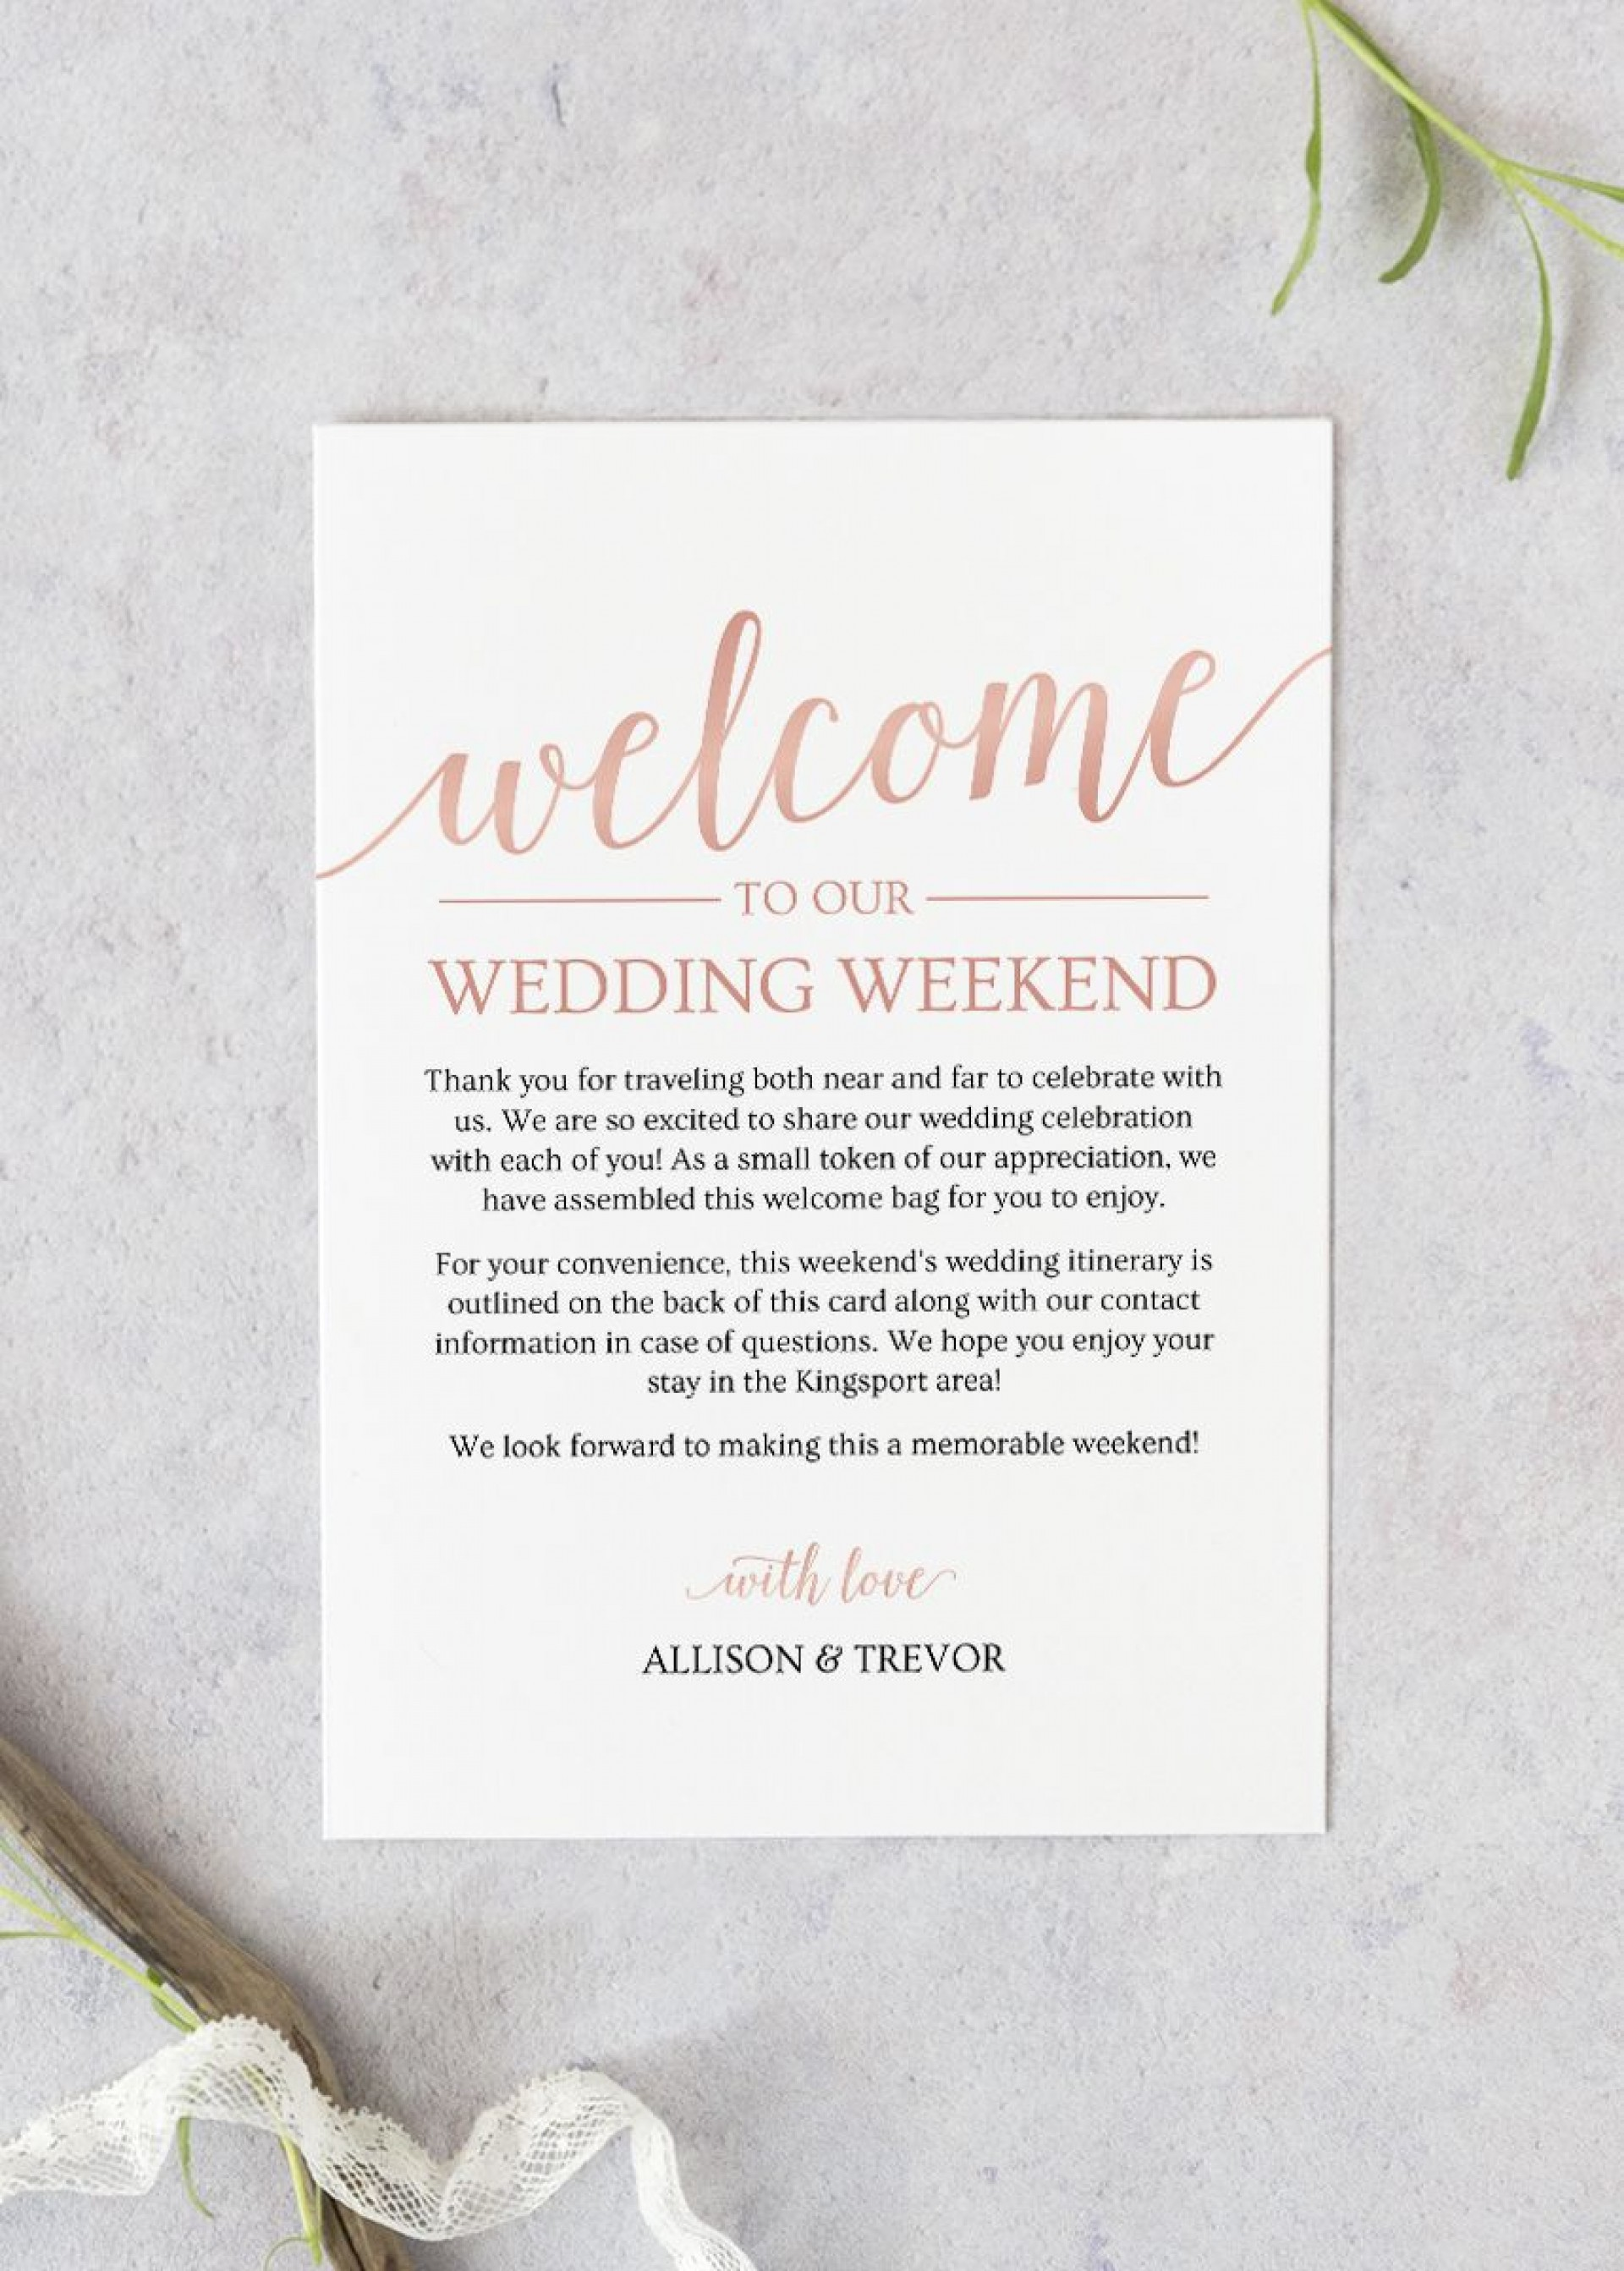 005 Top Wedding Welcome Bag Letter Template Free High Def 1920